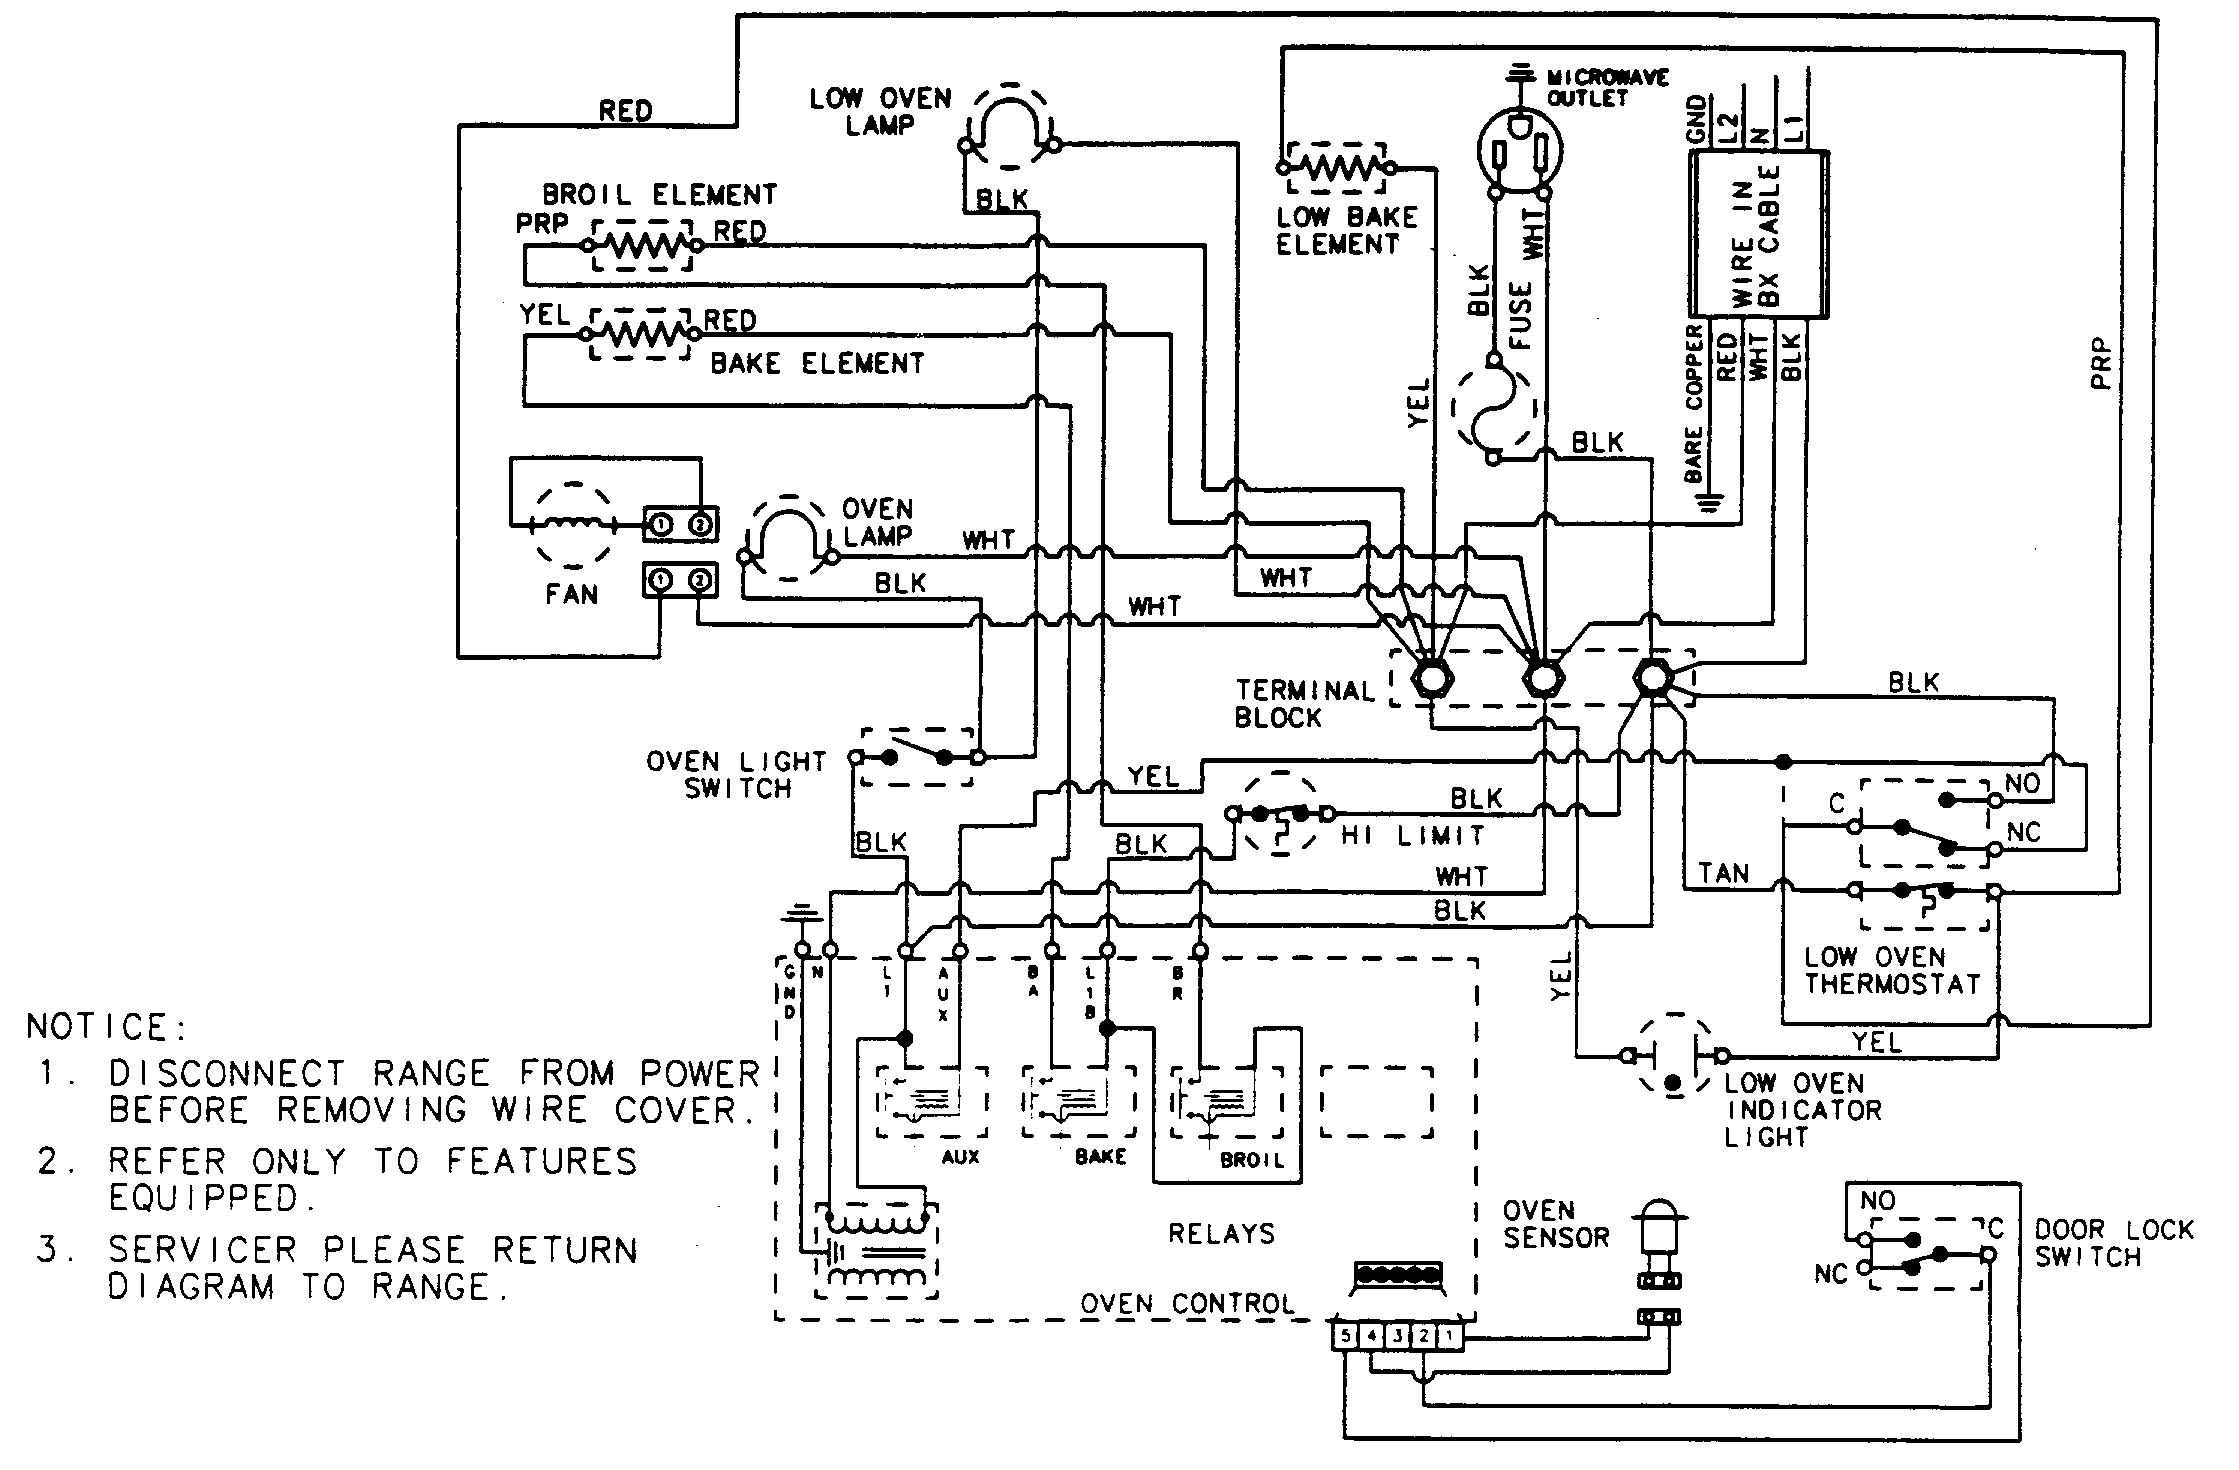 electric clock wiring diagram, Wiring diagram